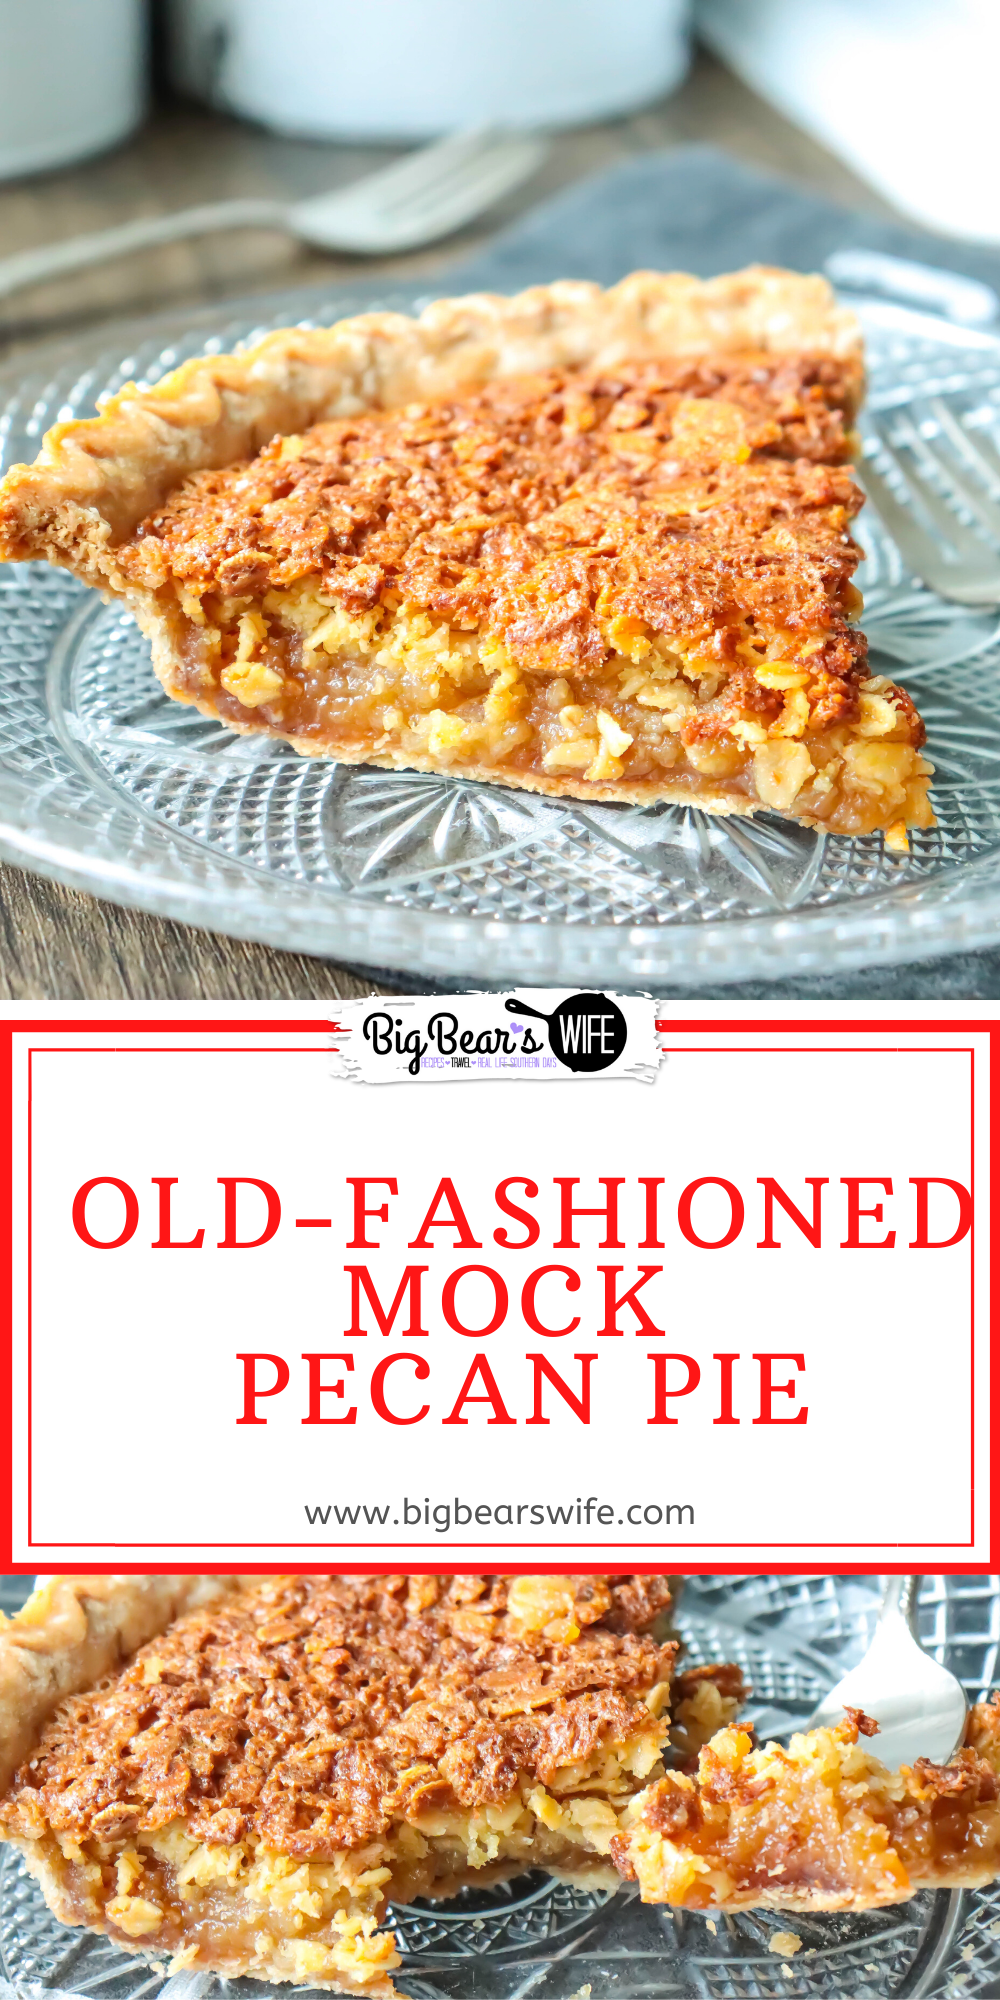 """Old-Fashioned Mock Pecan Pie is a vintage pie recipe that is also know as """"Depression Pie"""" or """"Oatmeal Pie""""and it was popular in the 1920sand 1930s during the depression. via @bigbearswife"""